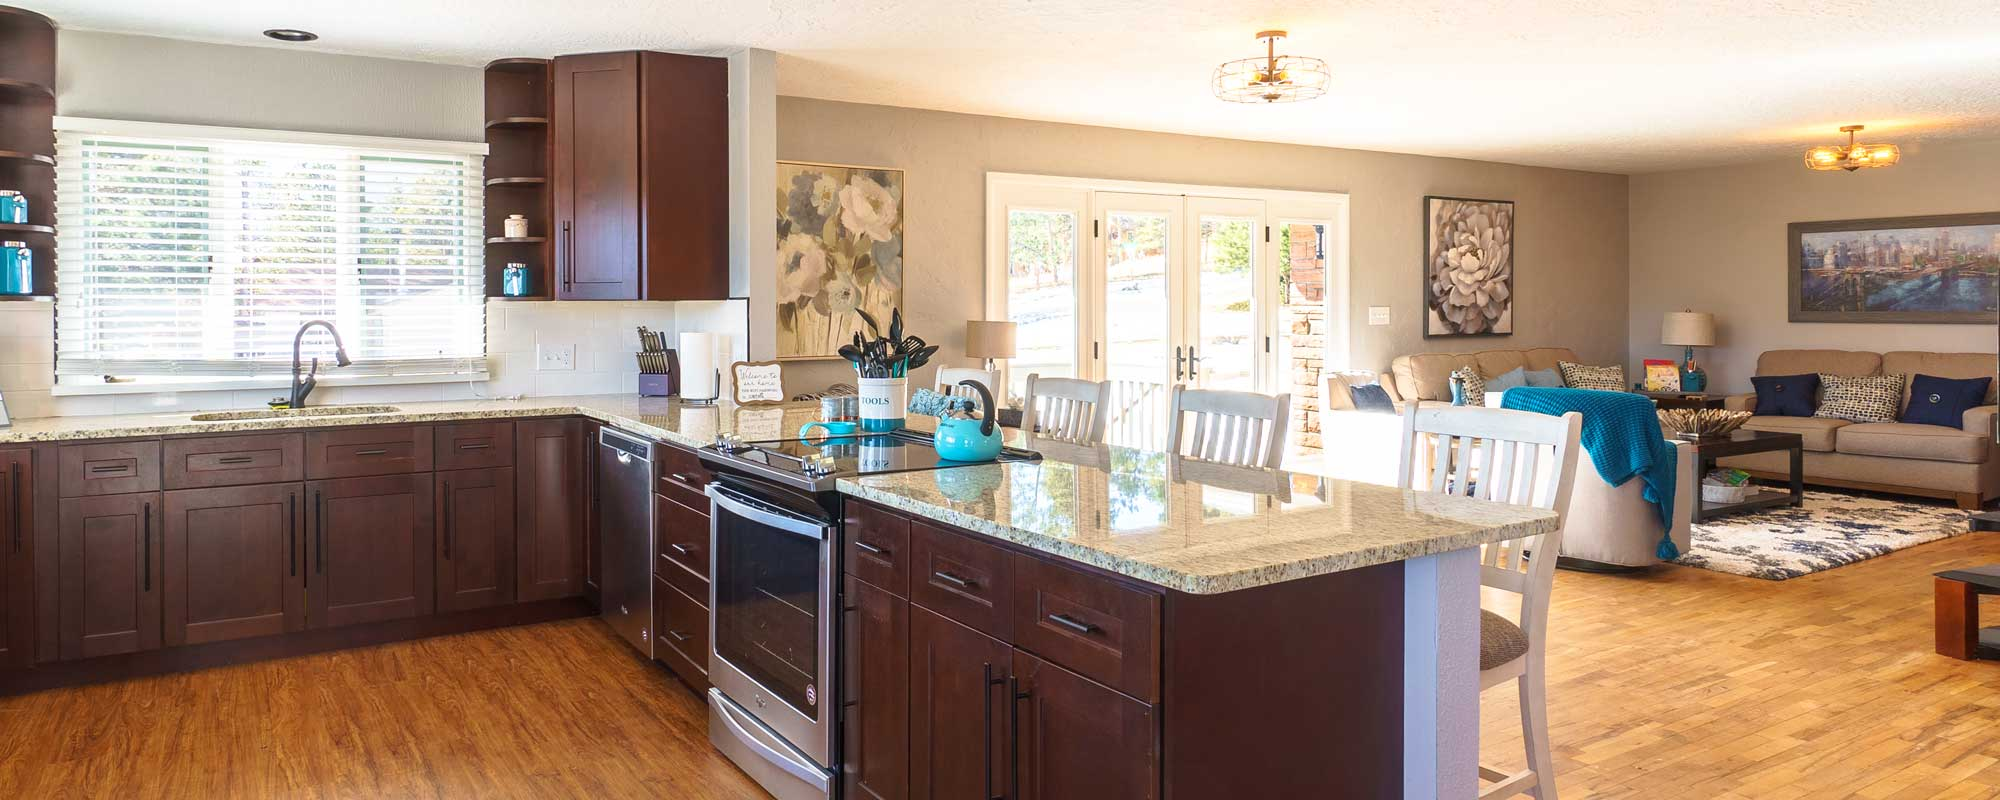 Traditional, contemporary, craftsman-style open layout kitchen